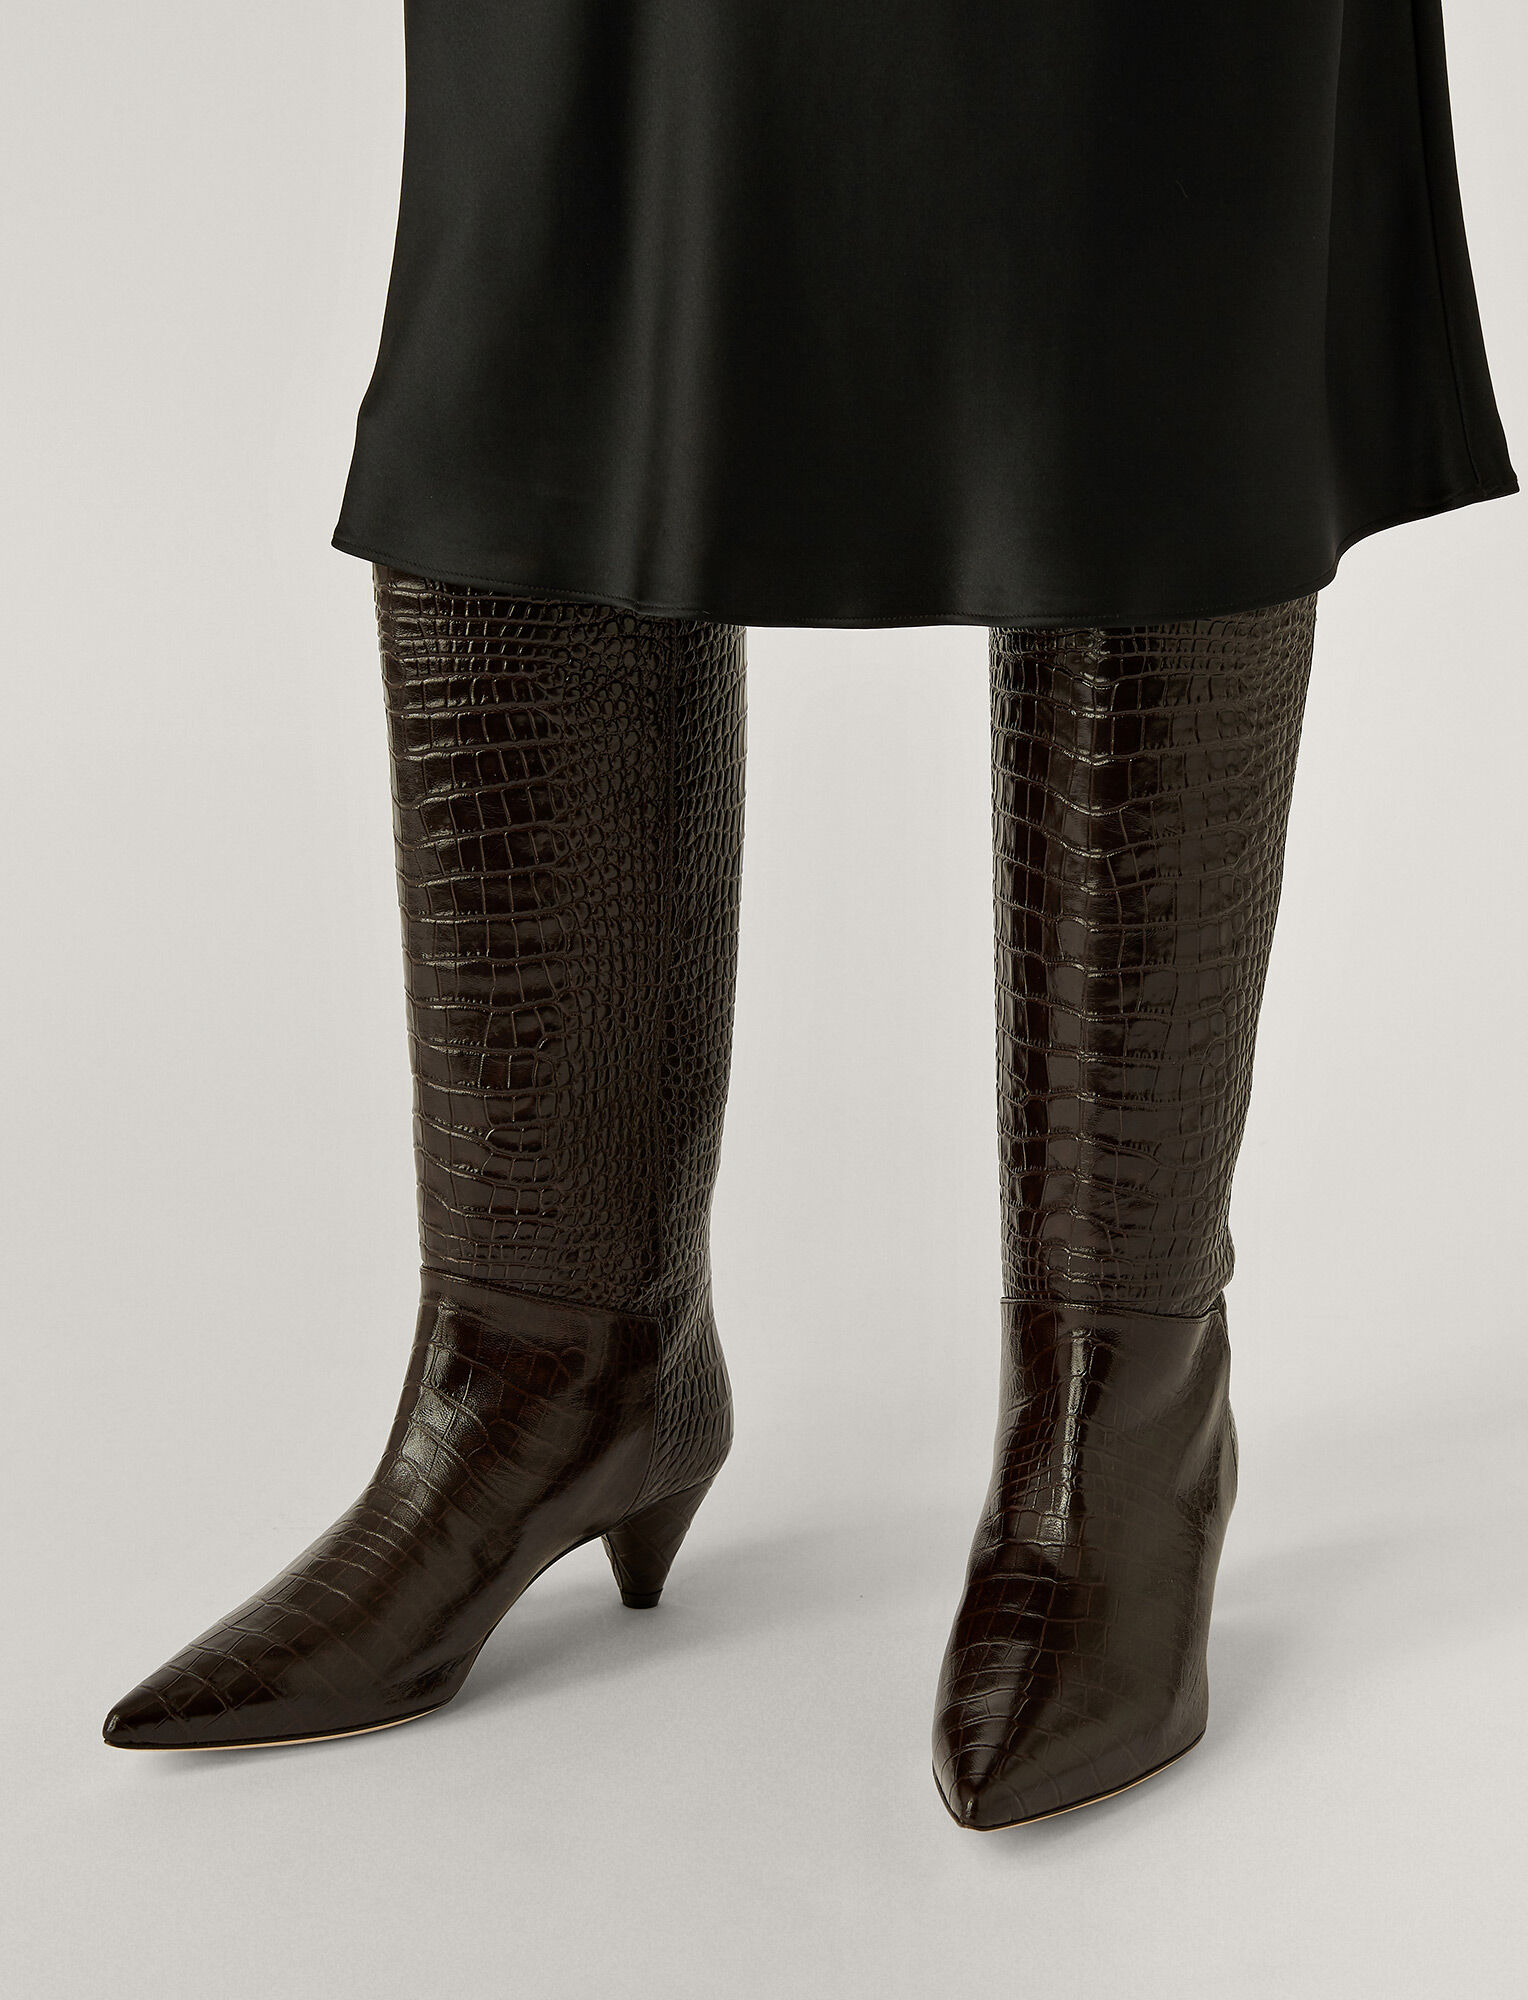 Joseph, Cone Heel Long Boots, in Chocolate